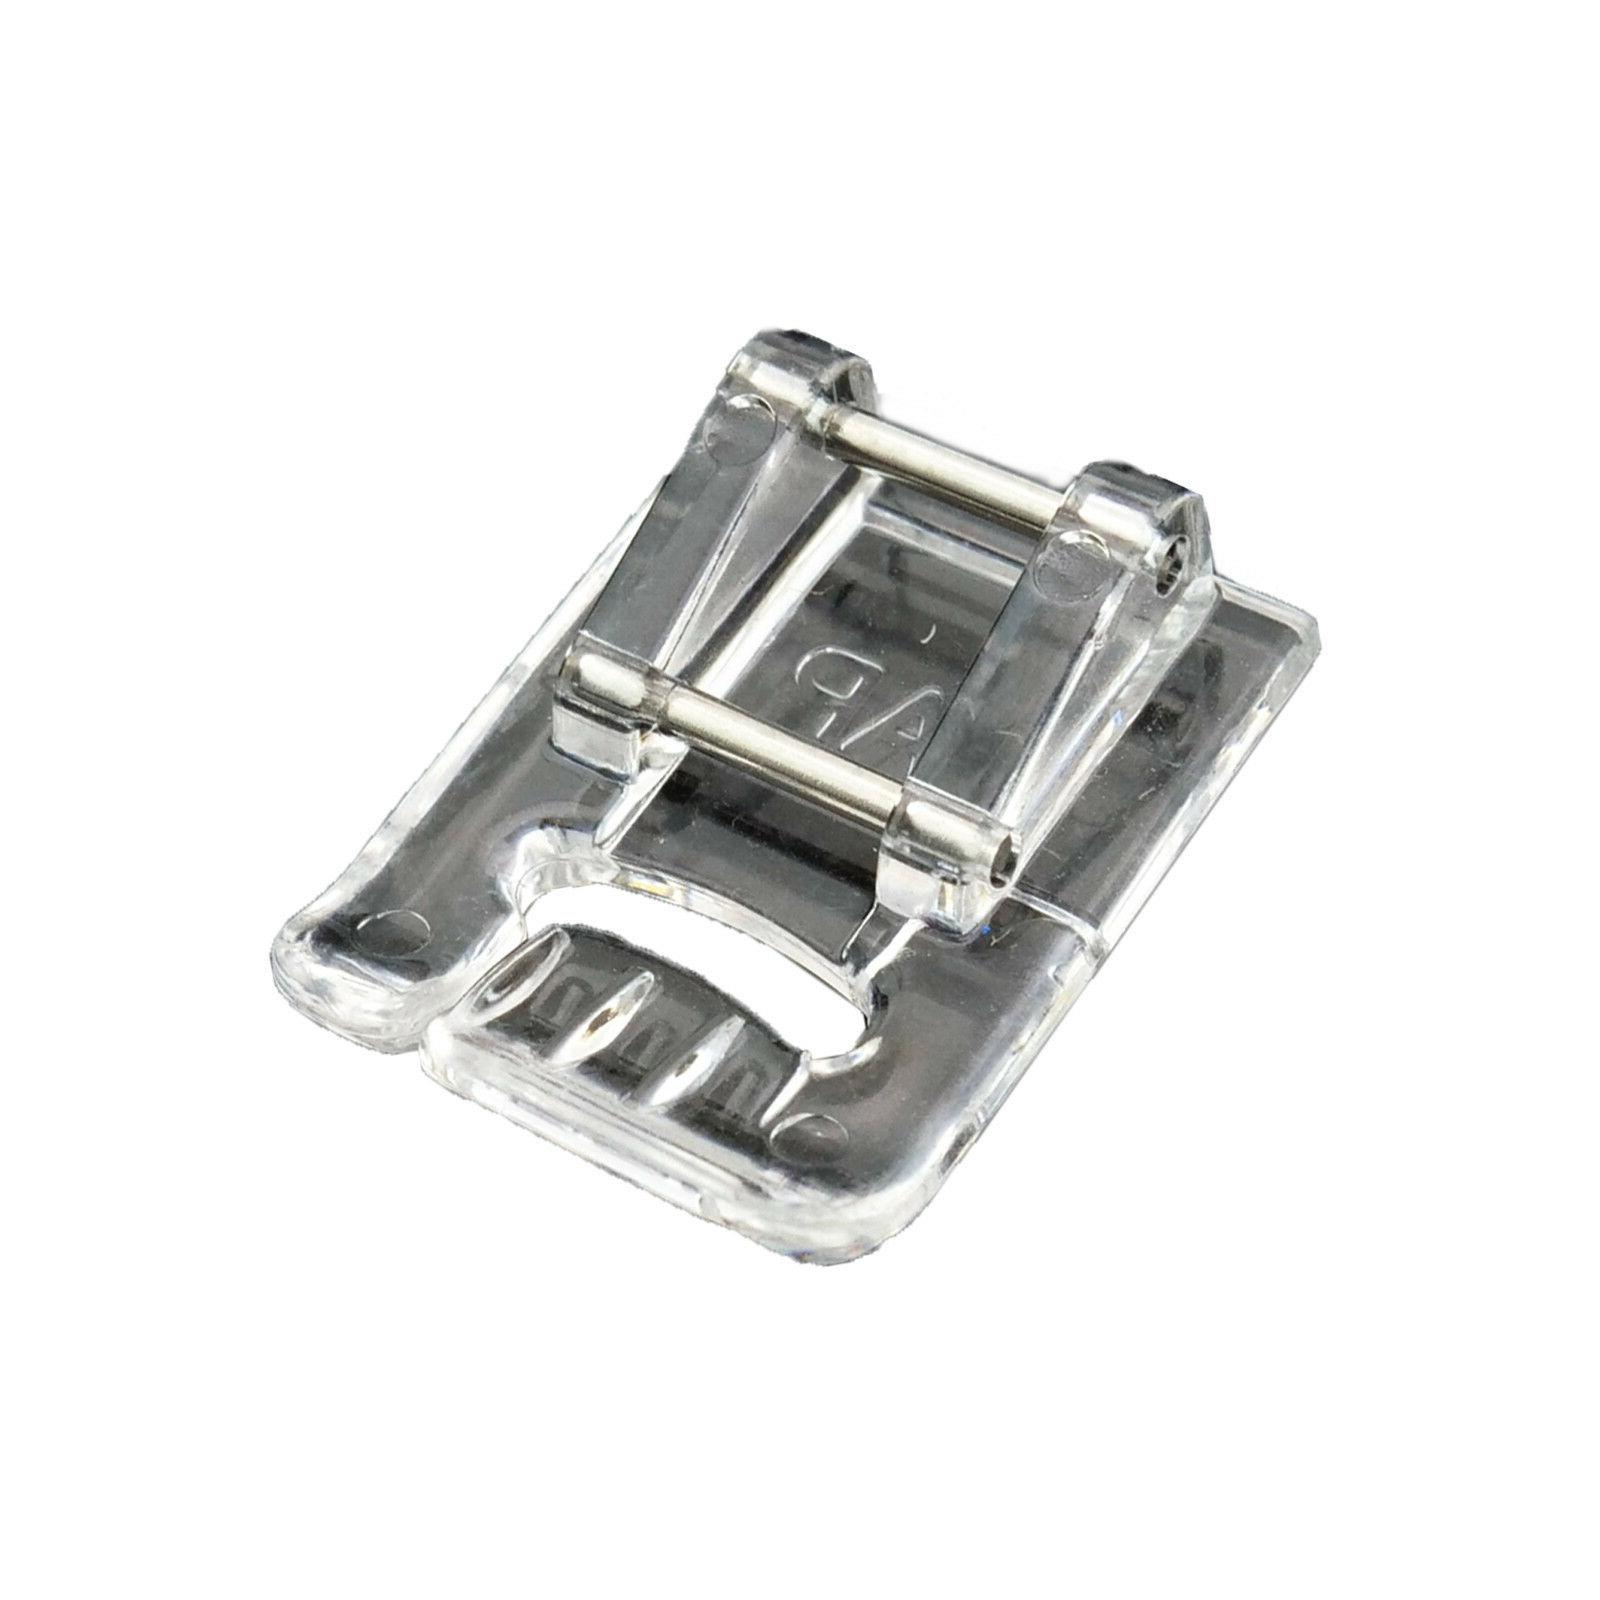 Snap-On Applique Foot #202086002 For Janome 9mm Sewing Machi